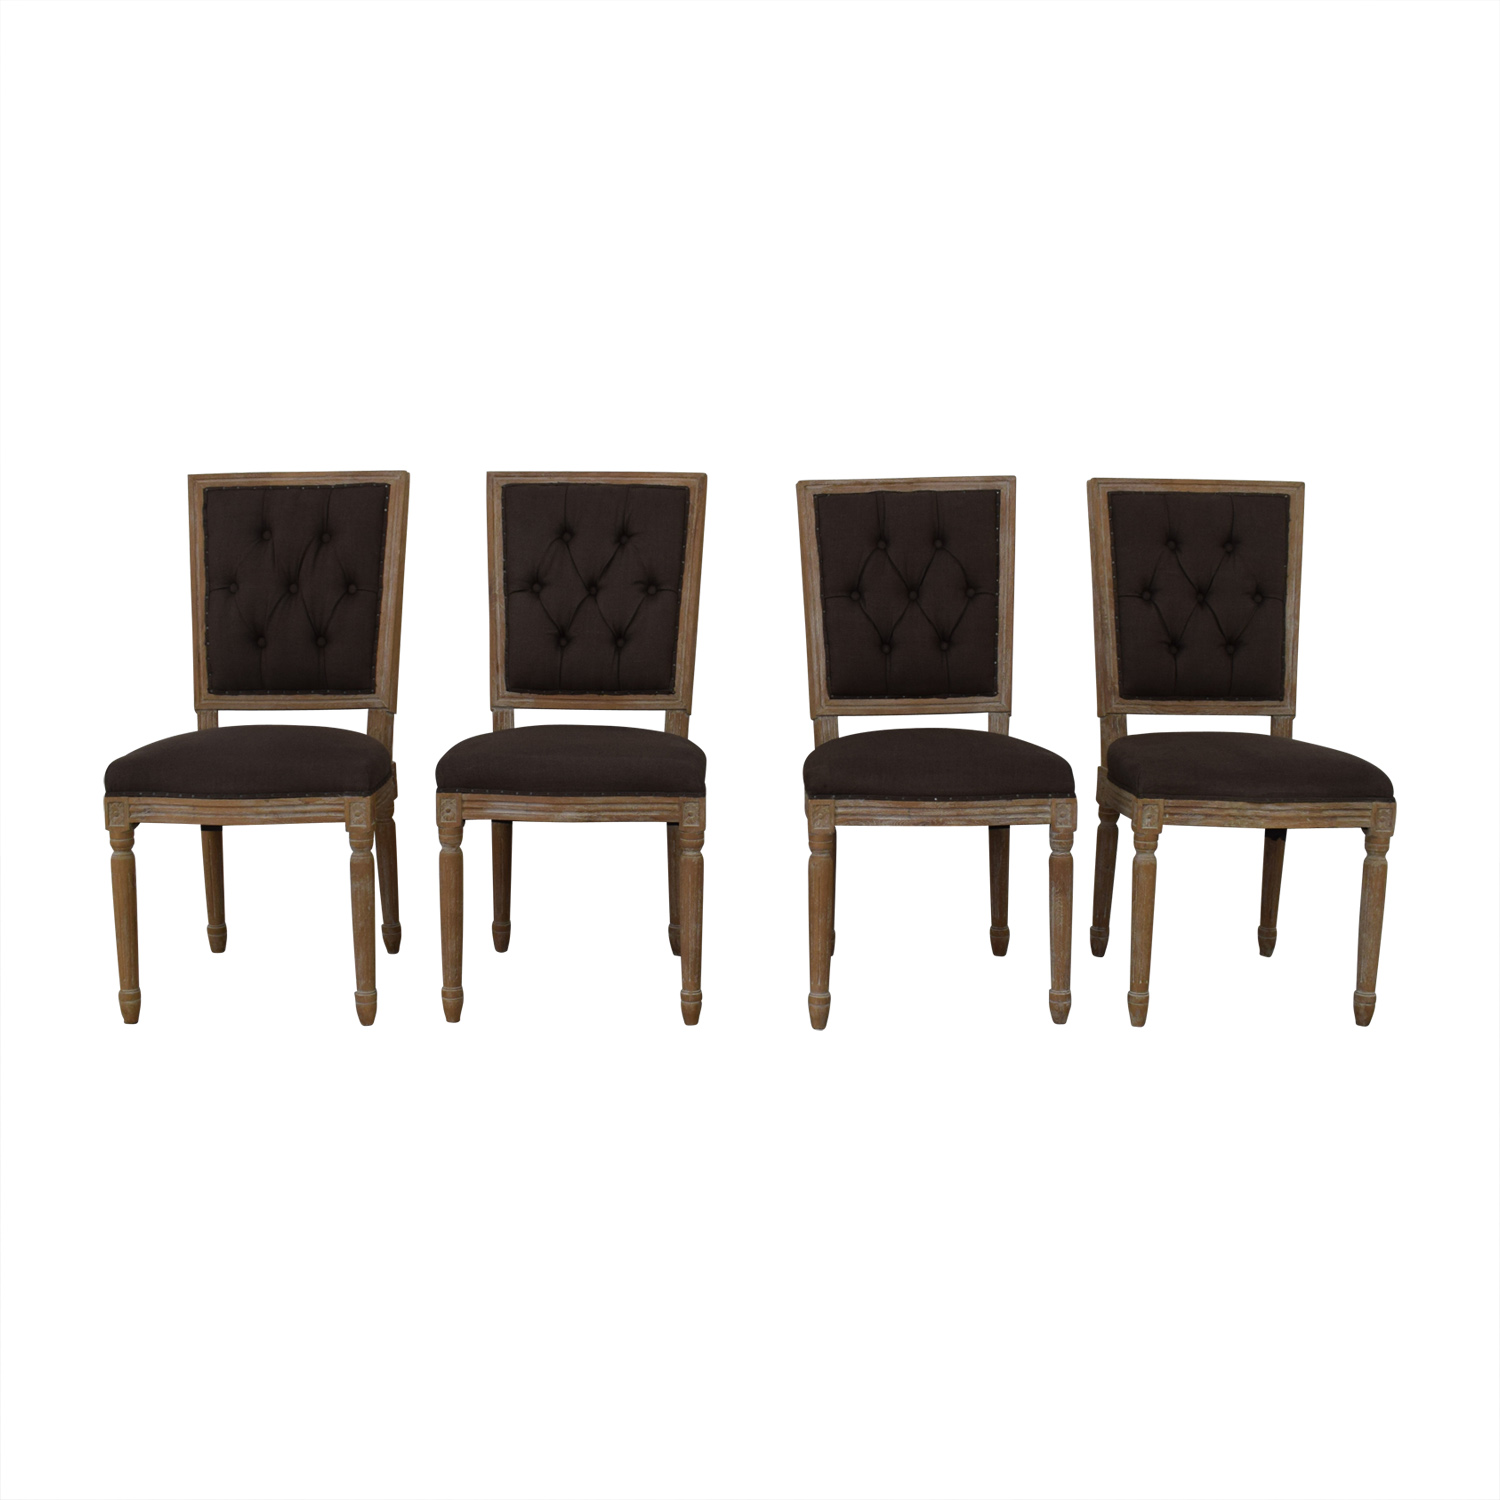 Orient Express Furniture Orient Express Furniture Elton Dining Chairs Dining Chairs